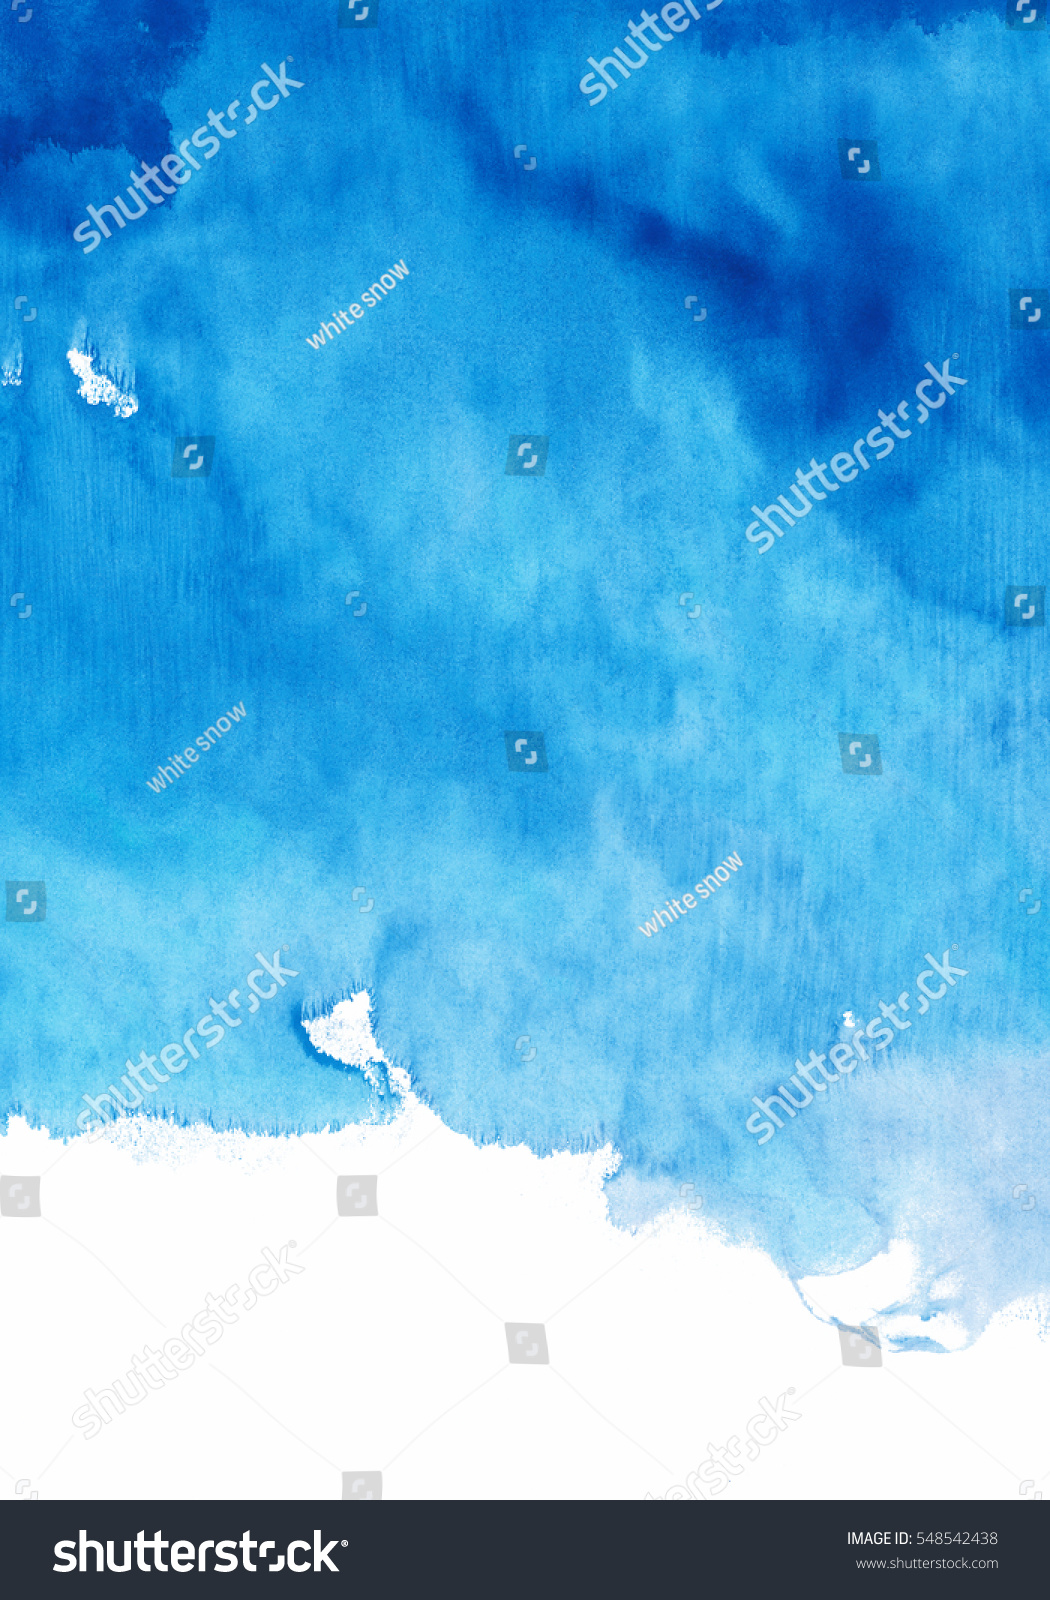 Shades Of Blue Paint Blue Watercolor Background Shades Blue Stock Illustration